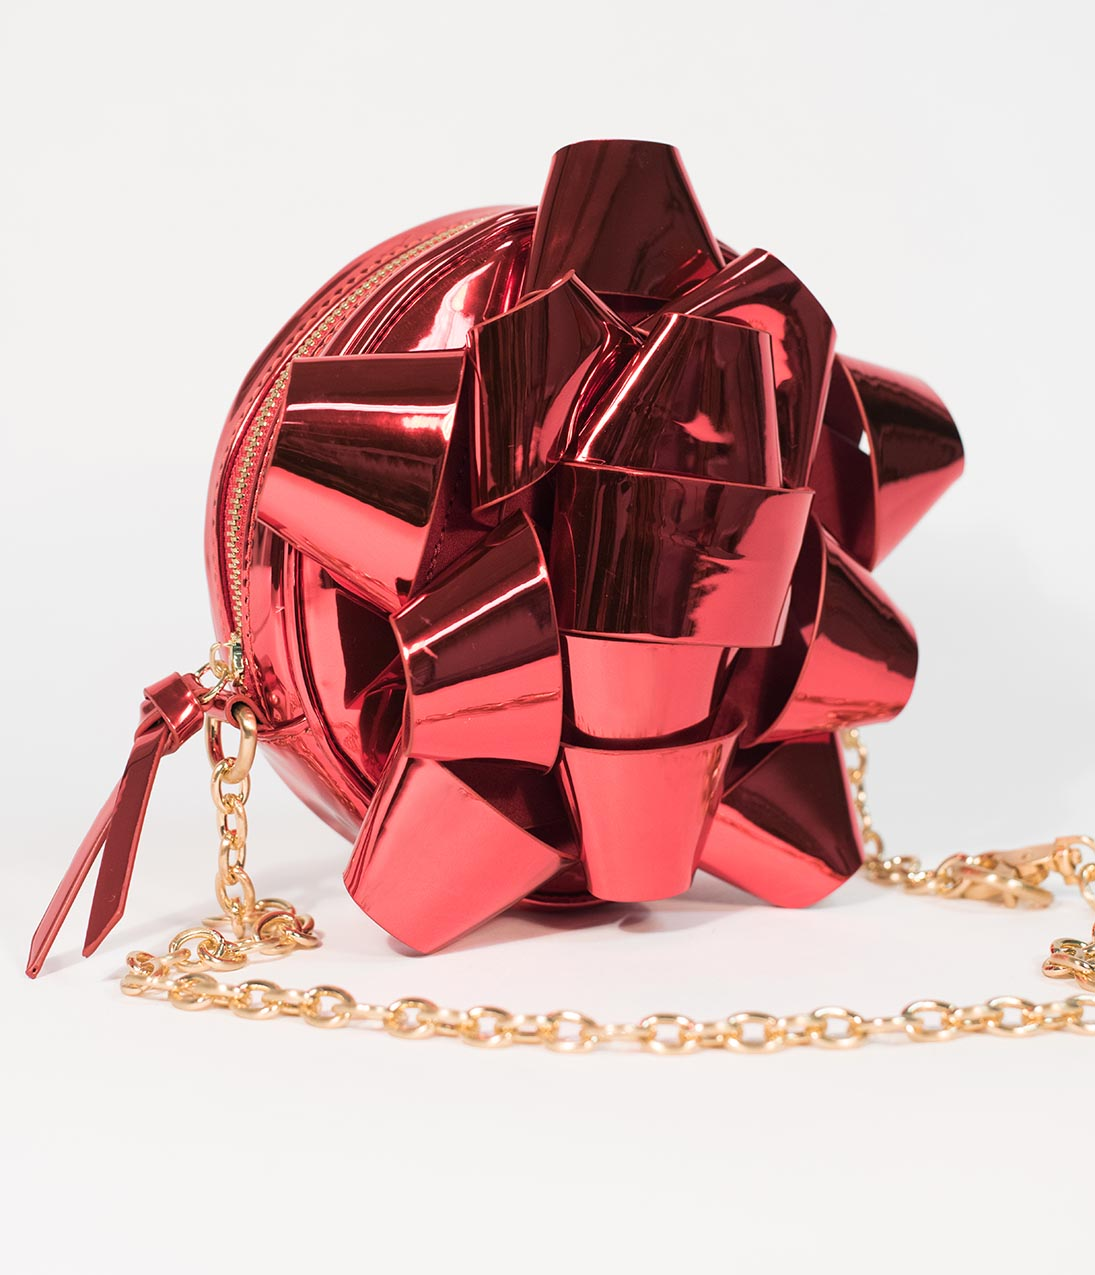 Vintage Christmas Dress | Party Dresses | Night Out Outfits Betsey Johnson Metallic Red Wrap Me Up Crossbody Purse $78.00 AT vintagedancer.com